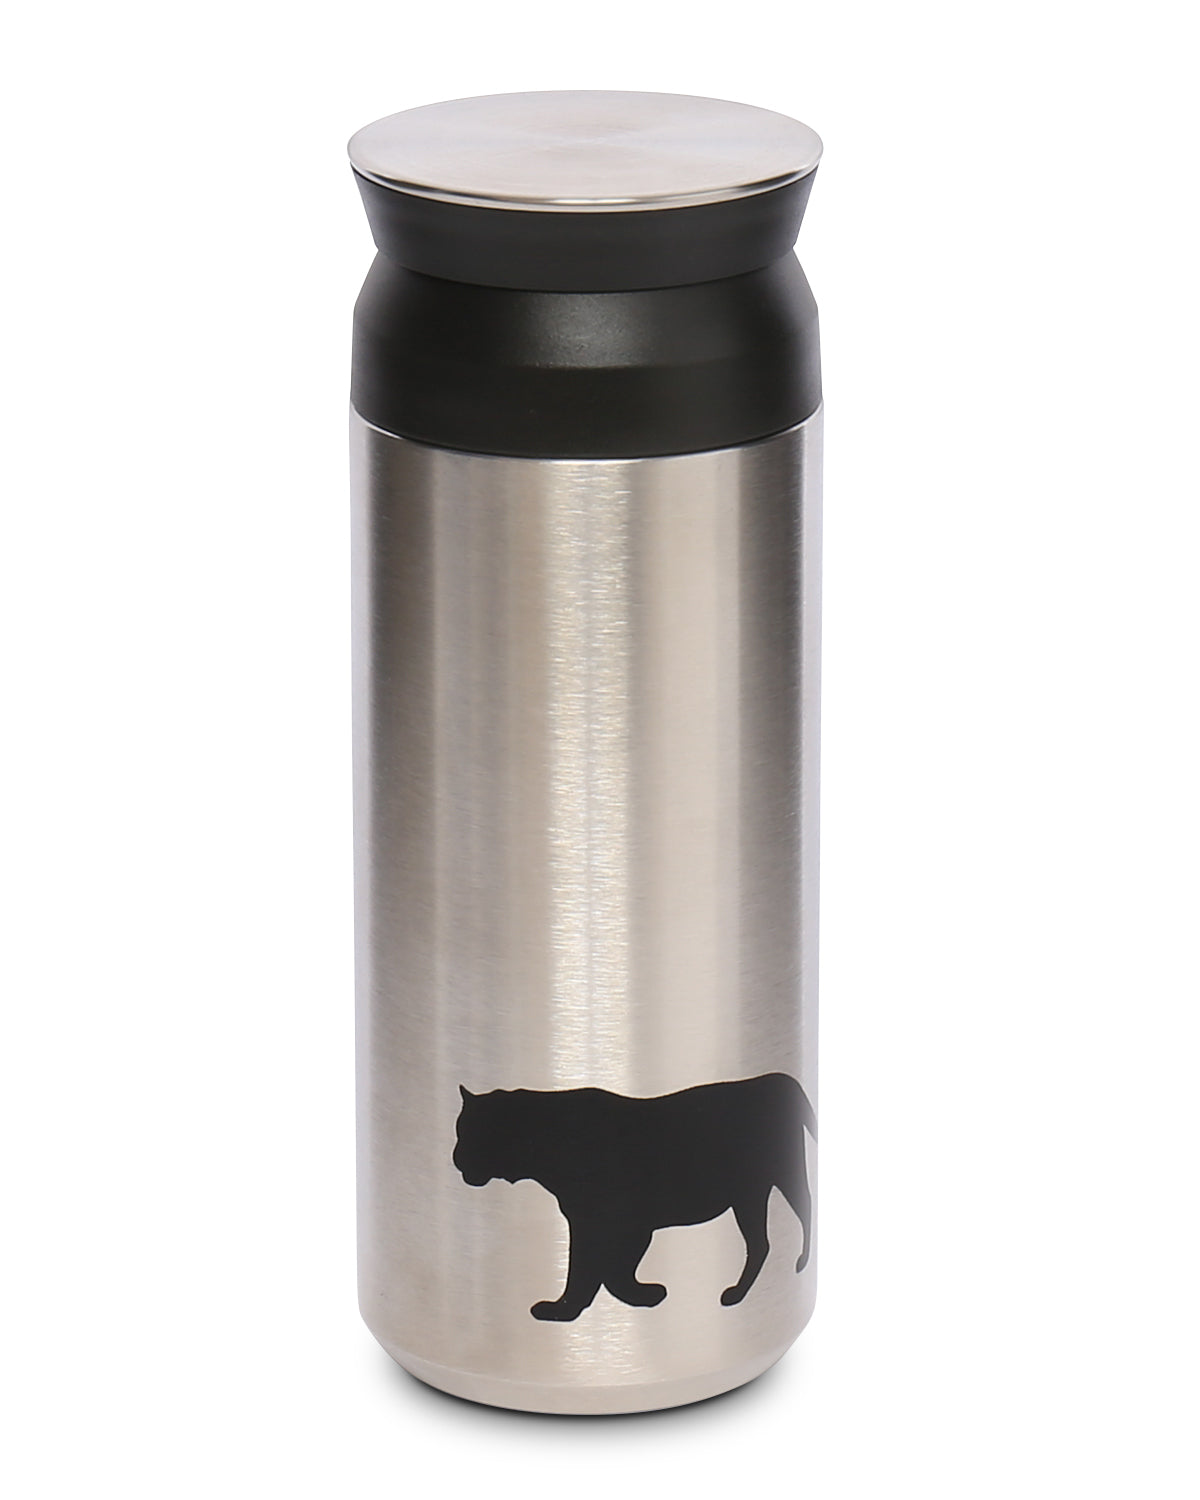 17 oz. Kinto Travel Tumbler - Equator Coffees and Teas